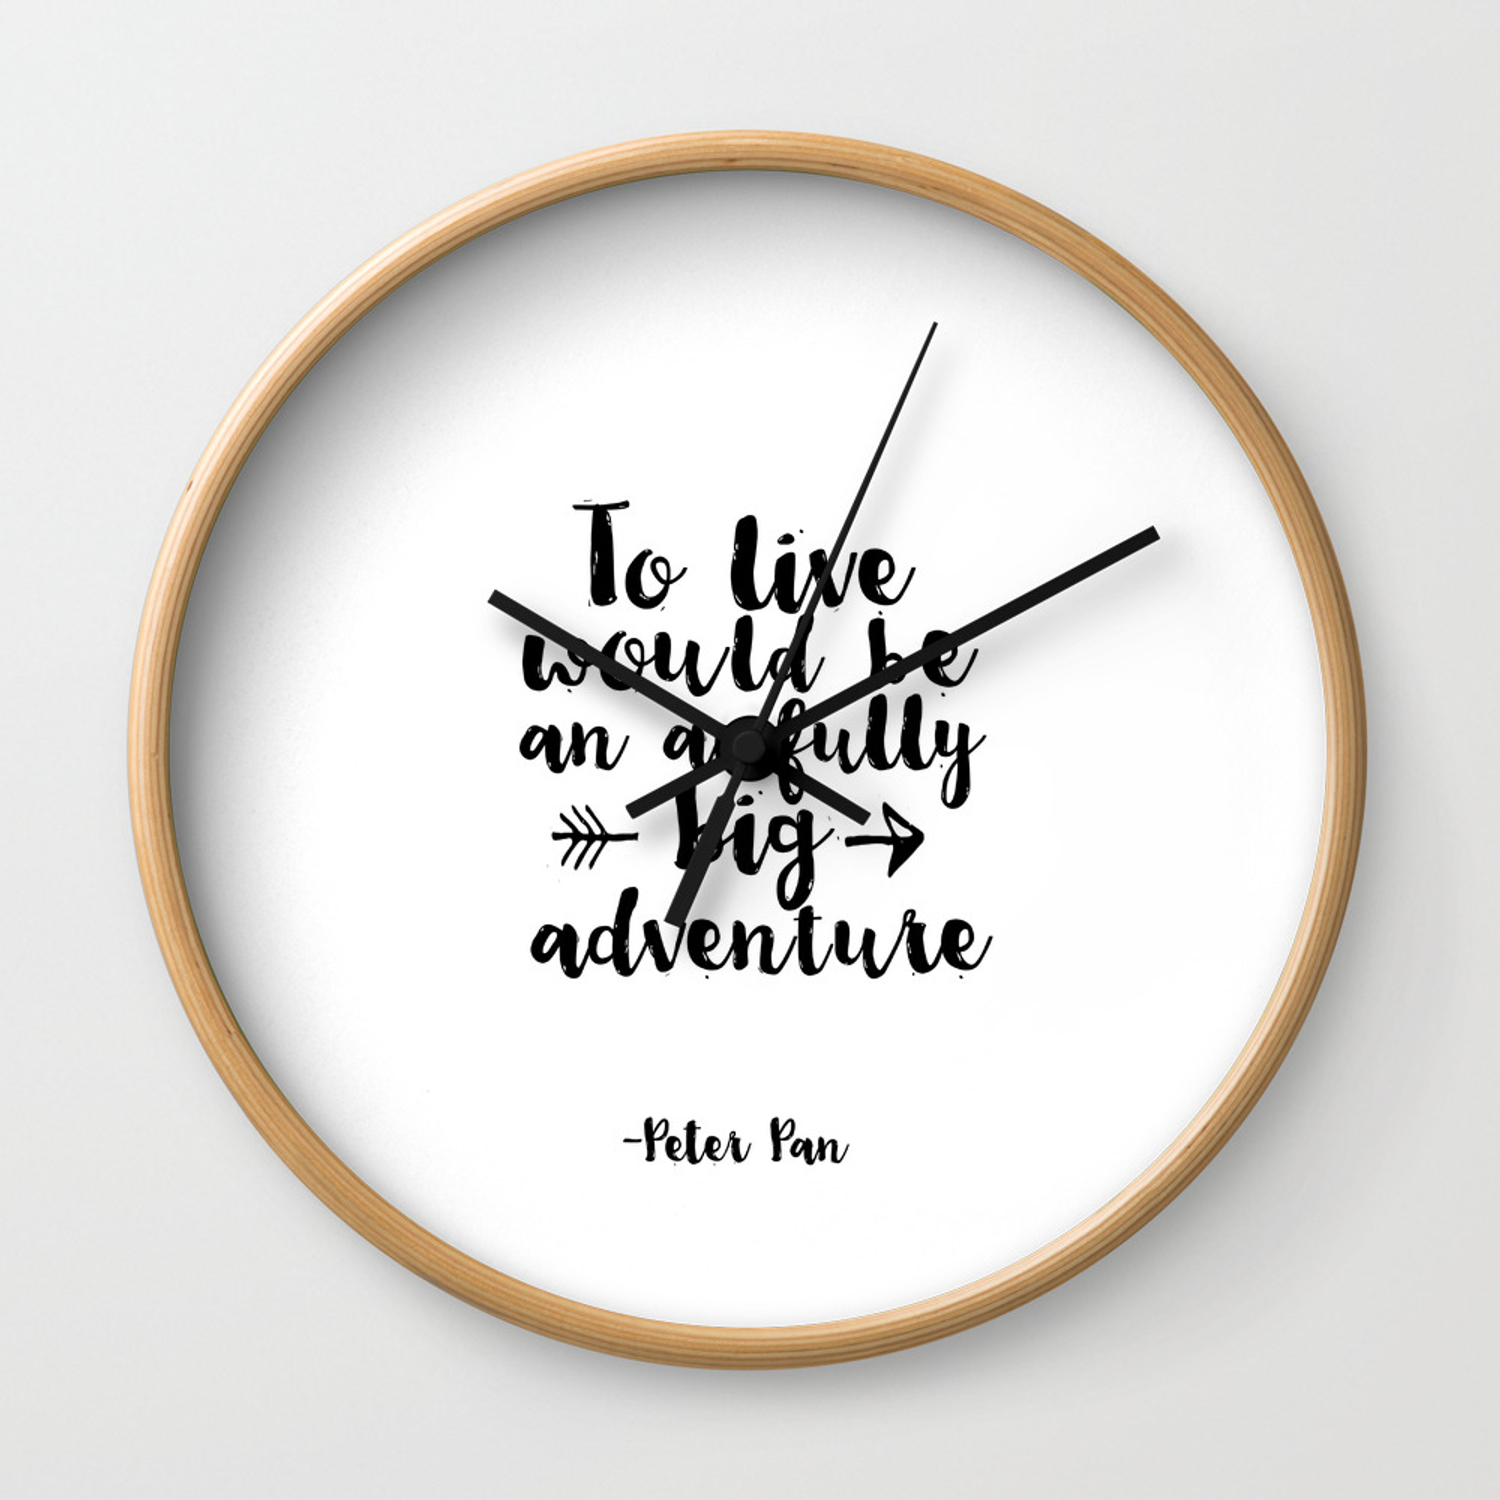 Nursery Prints Kids Gift Printable Peter Pan Quotes To Live Will Be An Awfully Adventure Wall Clock